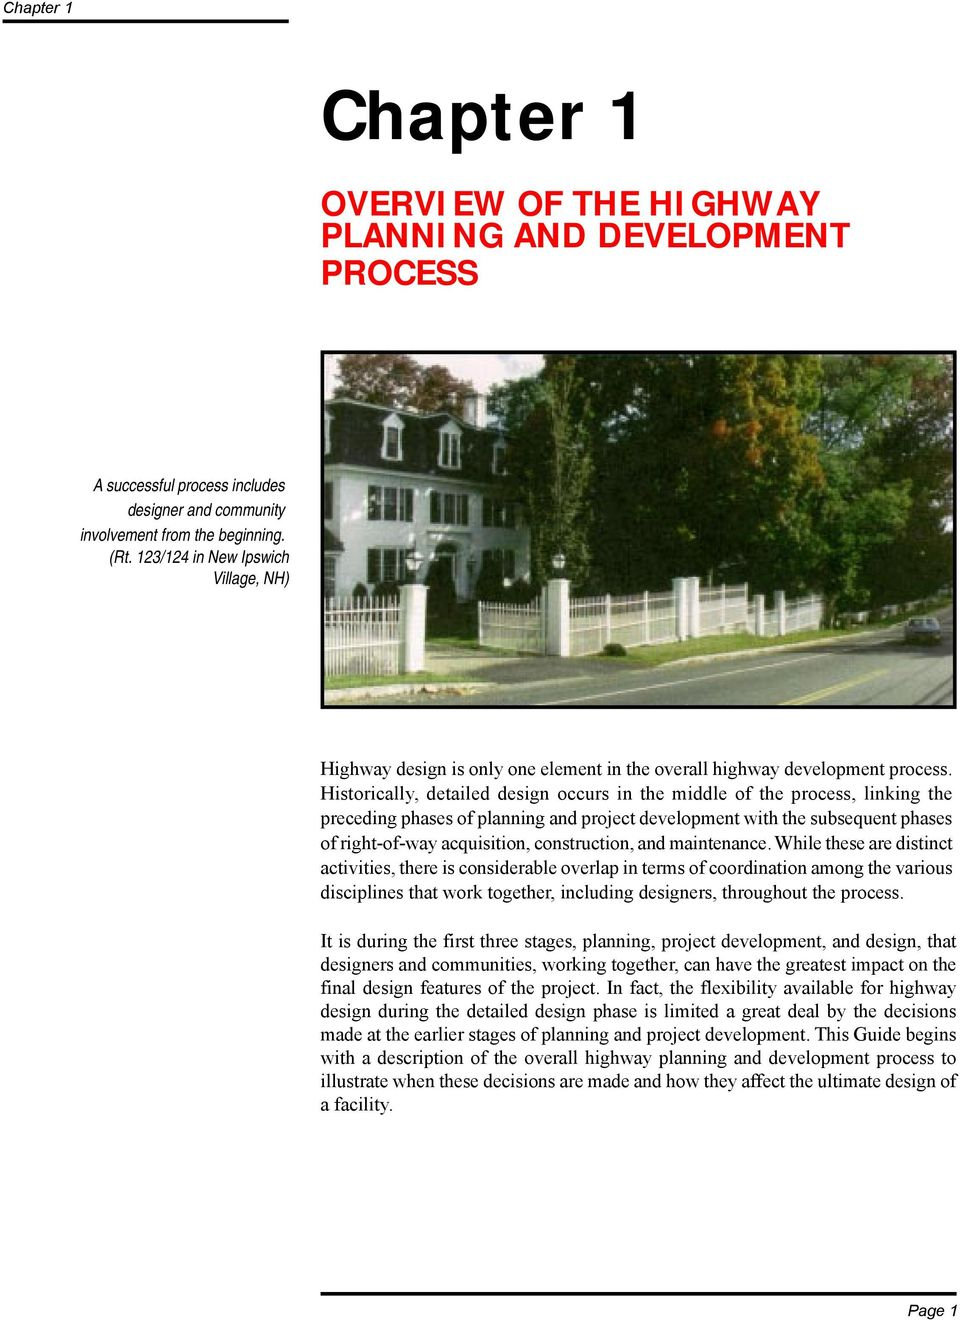 Historically, detailed design occurs in the middle of the process, linking the preceding phases of planning and project development with the subsequent phases of right-of-way acquisition,